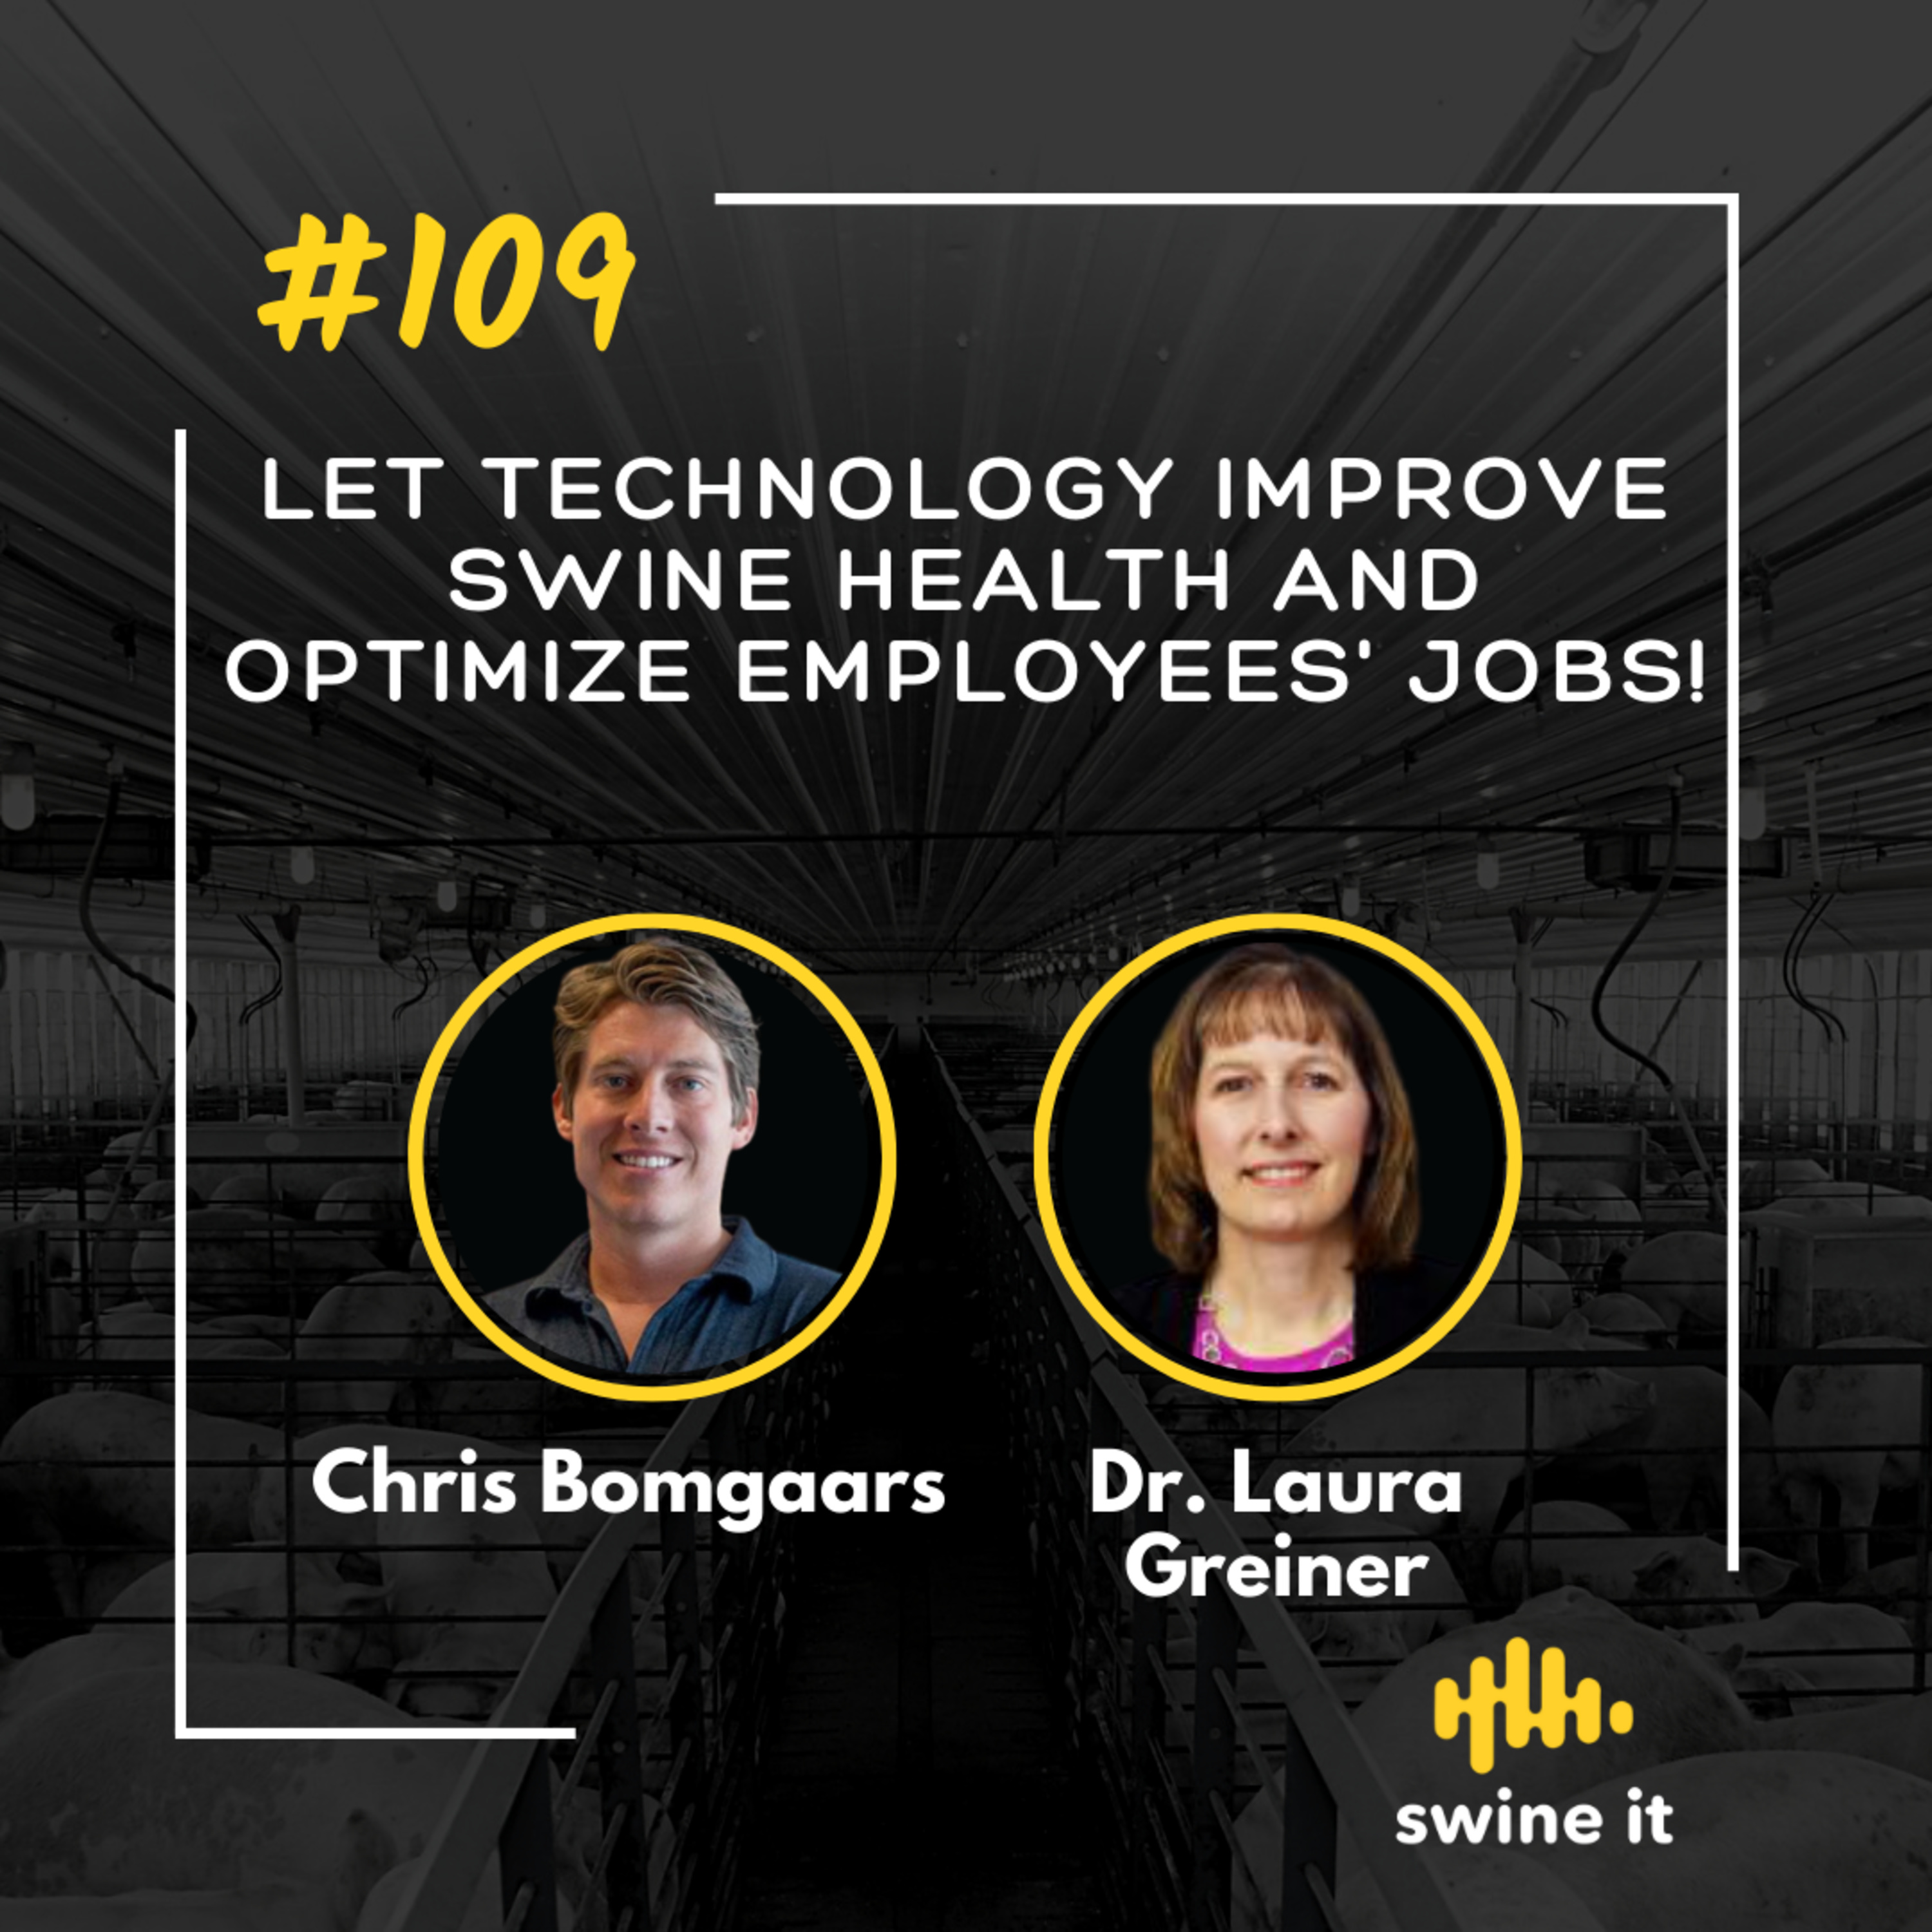 Let technology improve swine health and optimize employees' job! - Chris Bomgaars